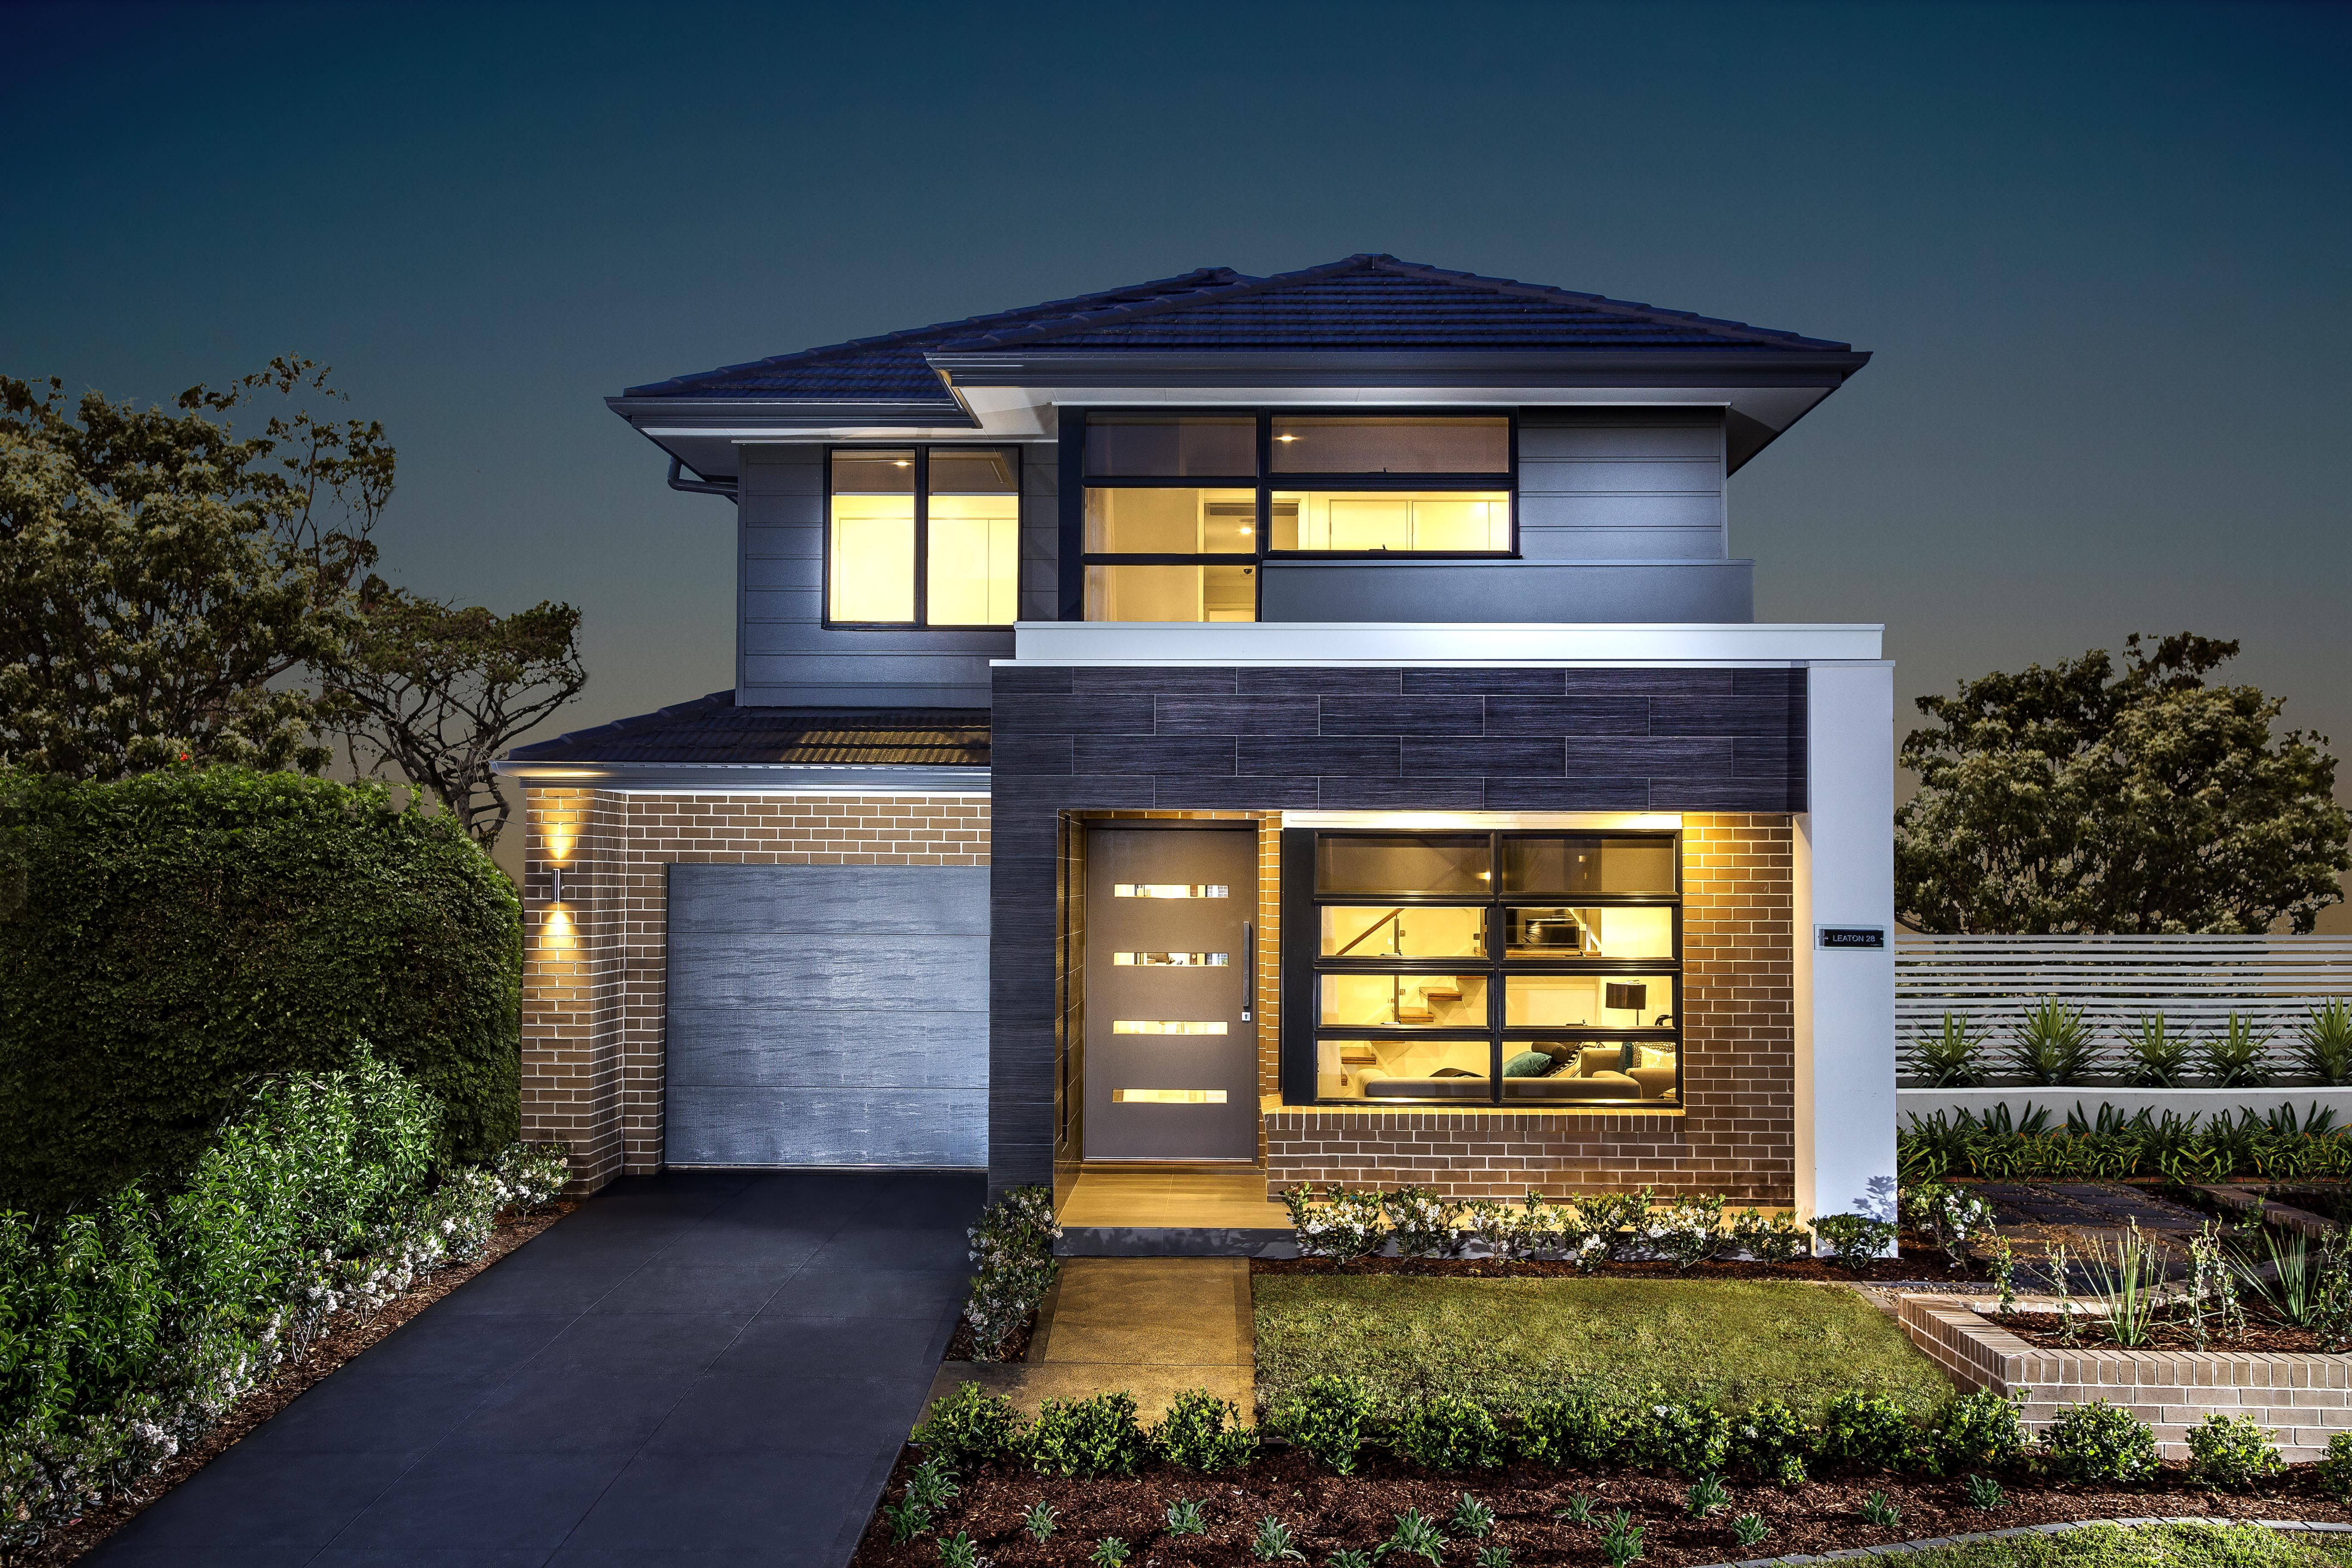 Leaton 28 Double storey home designed for more narrow blocks